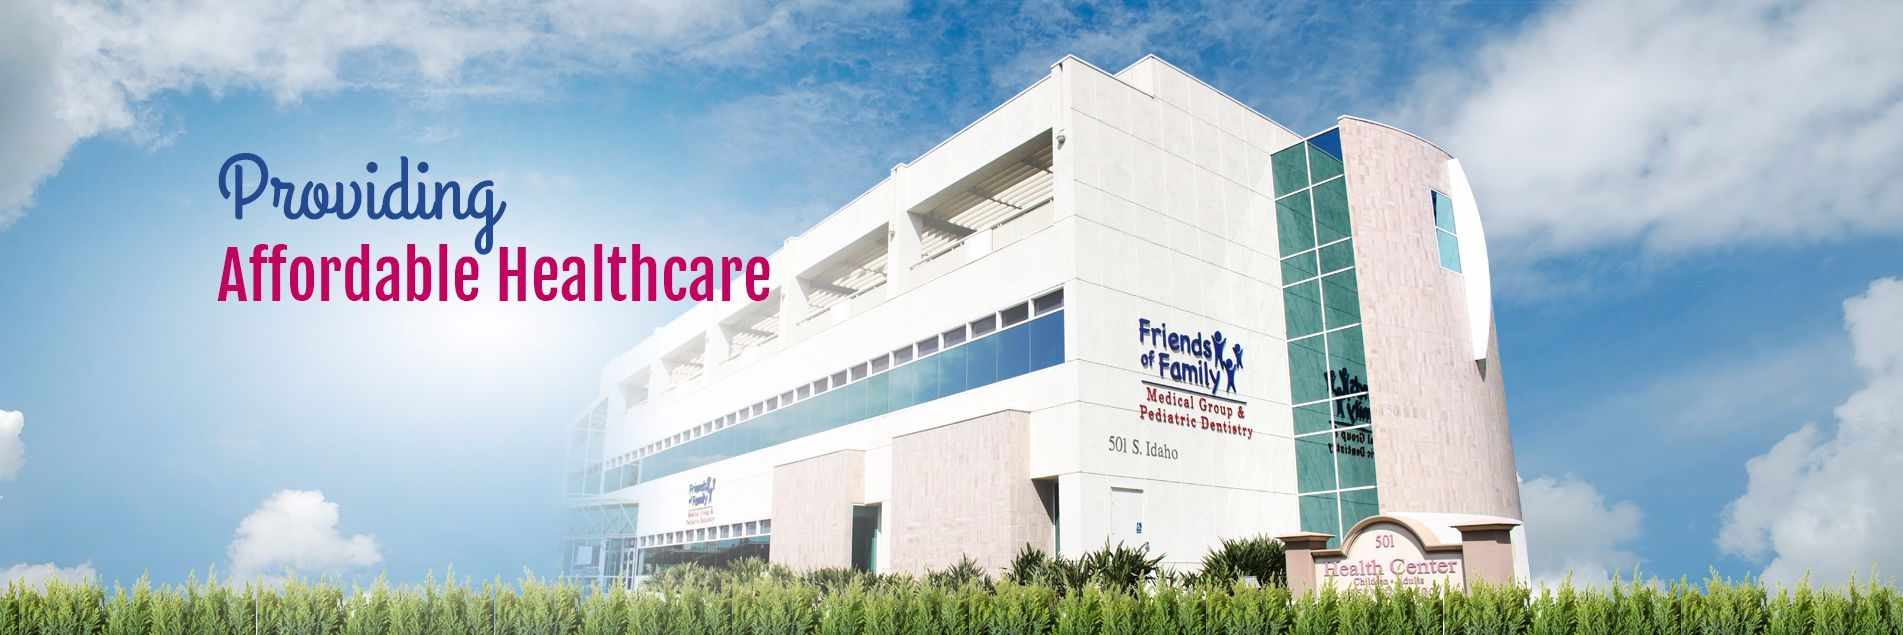 Friends of Family Health Center (@fofhealthcenter) Cover Image